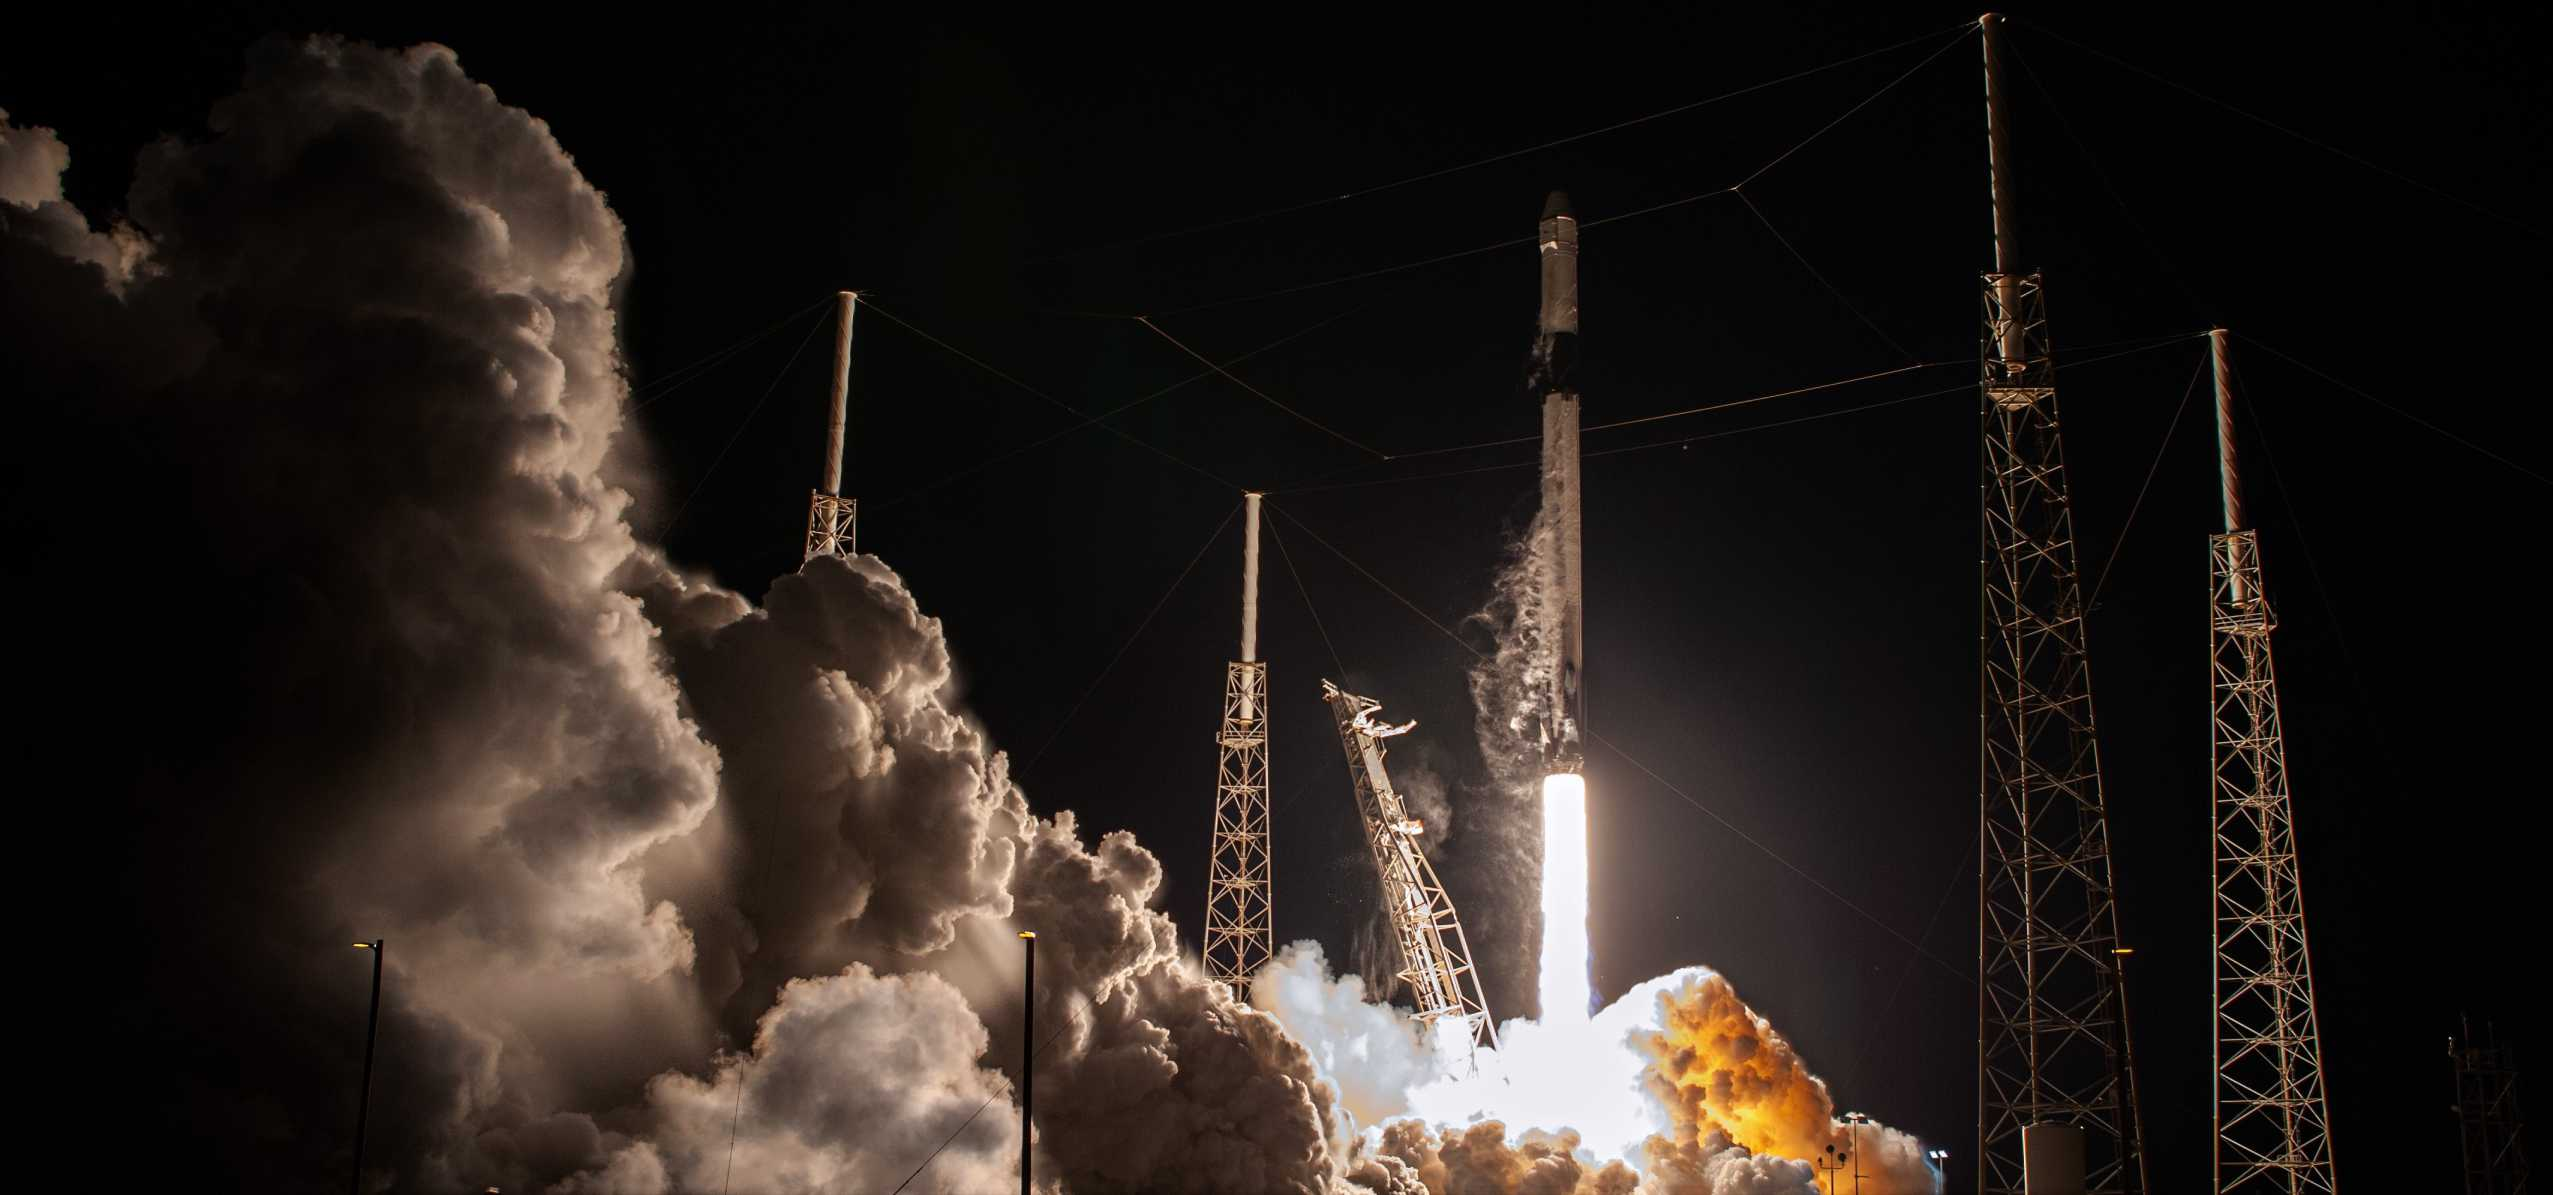 CRS-20 Dragon C112 F9 B1059 030720 (NASA) launch 2 crop 1 (c)